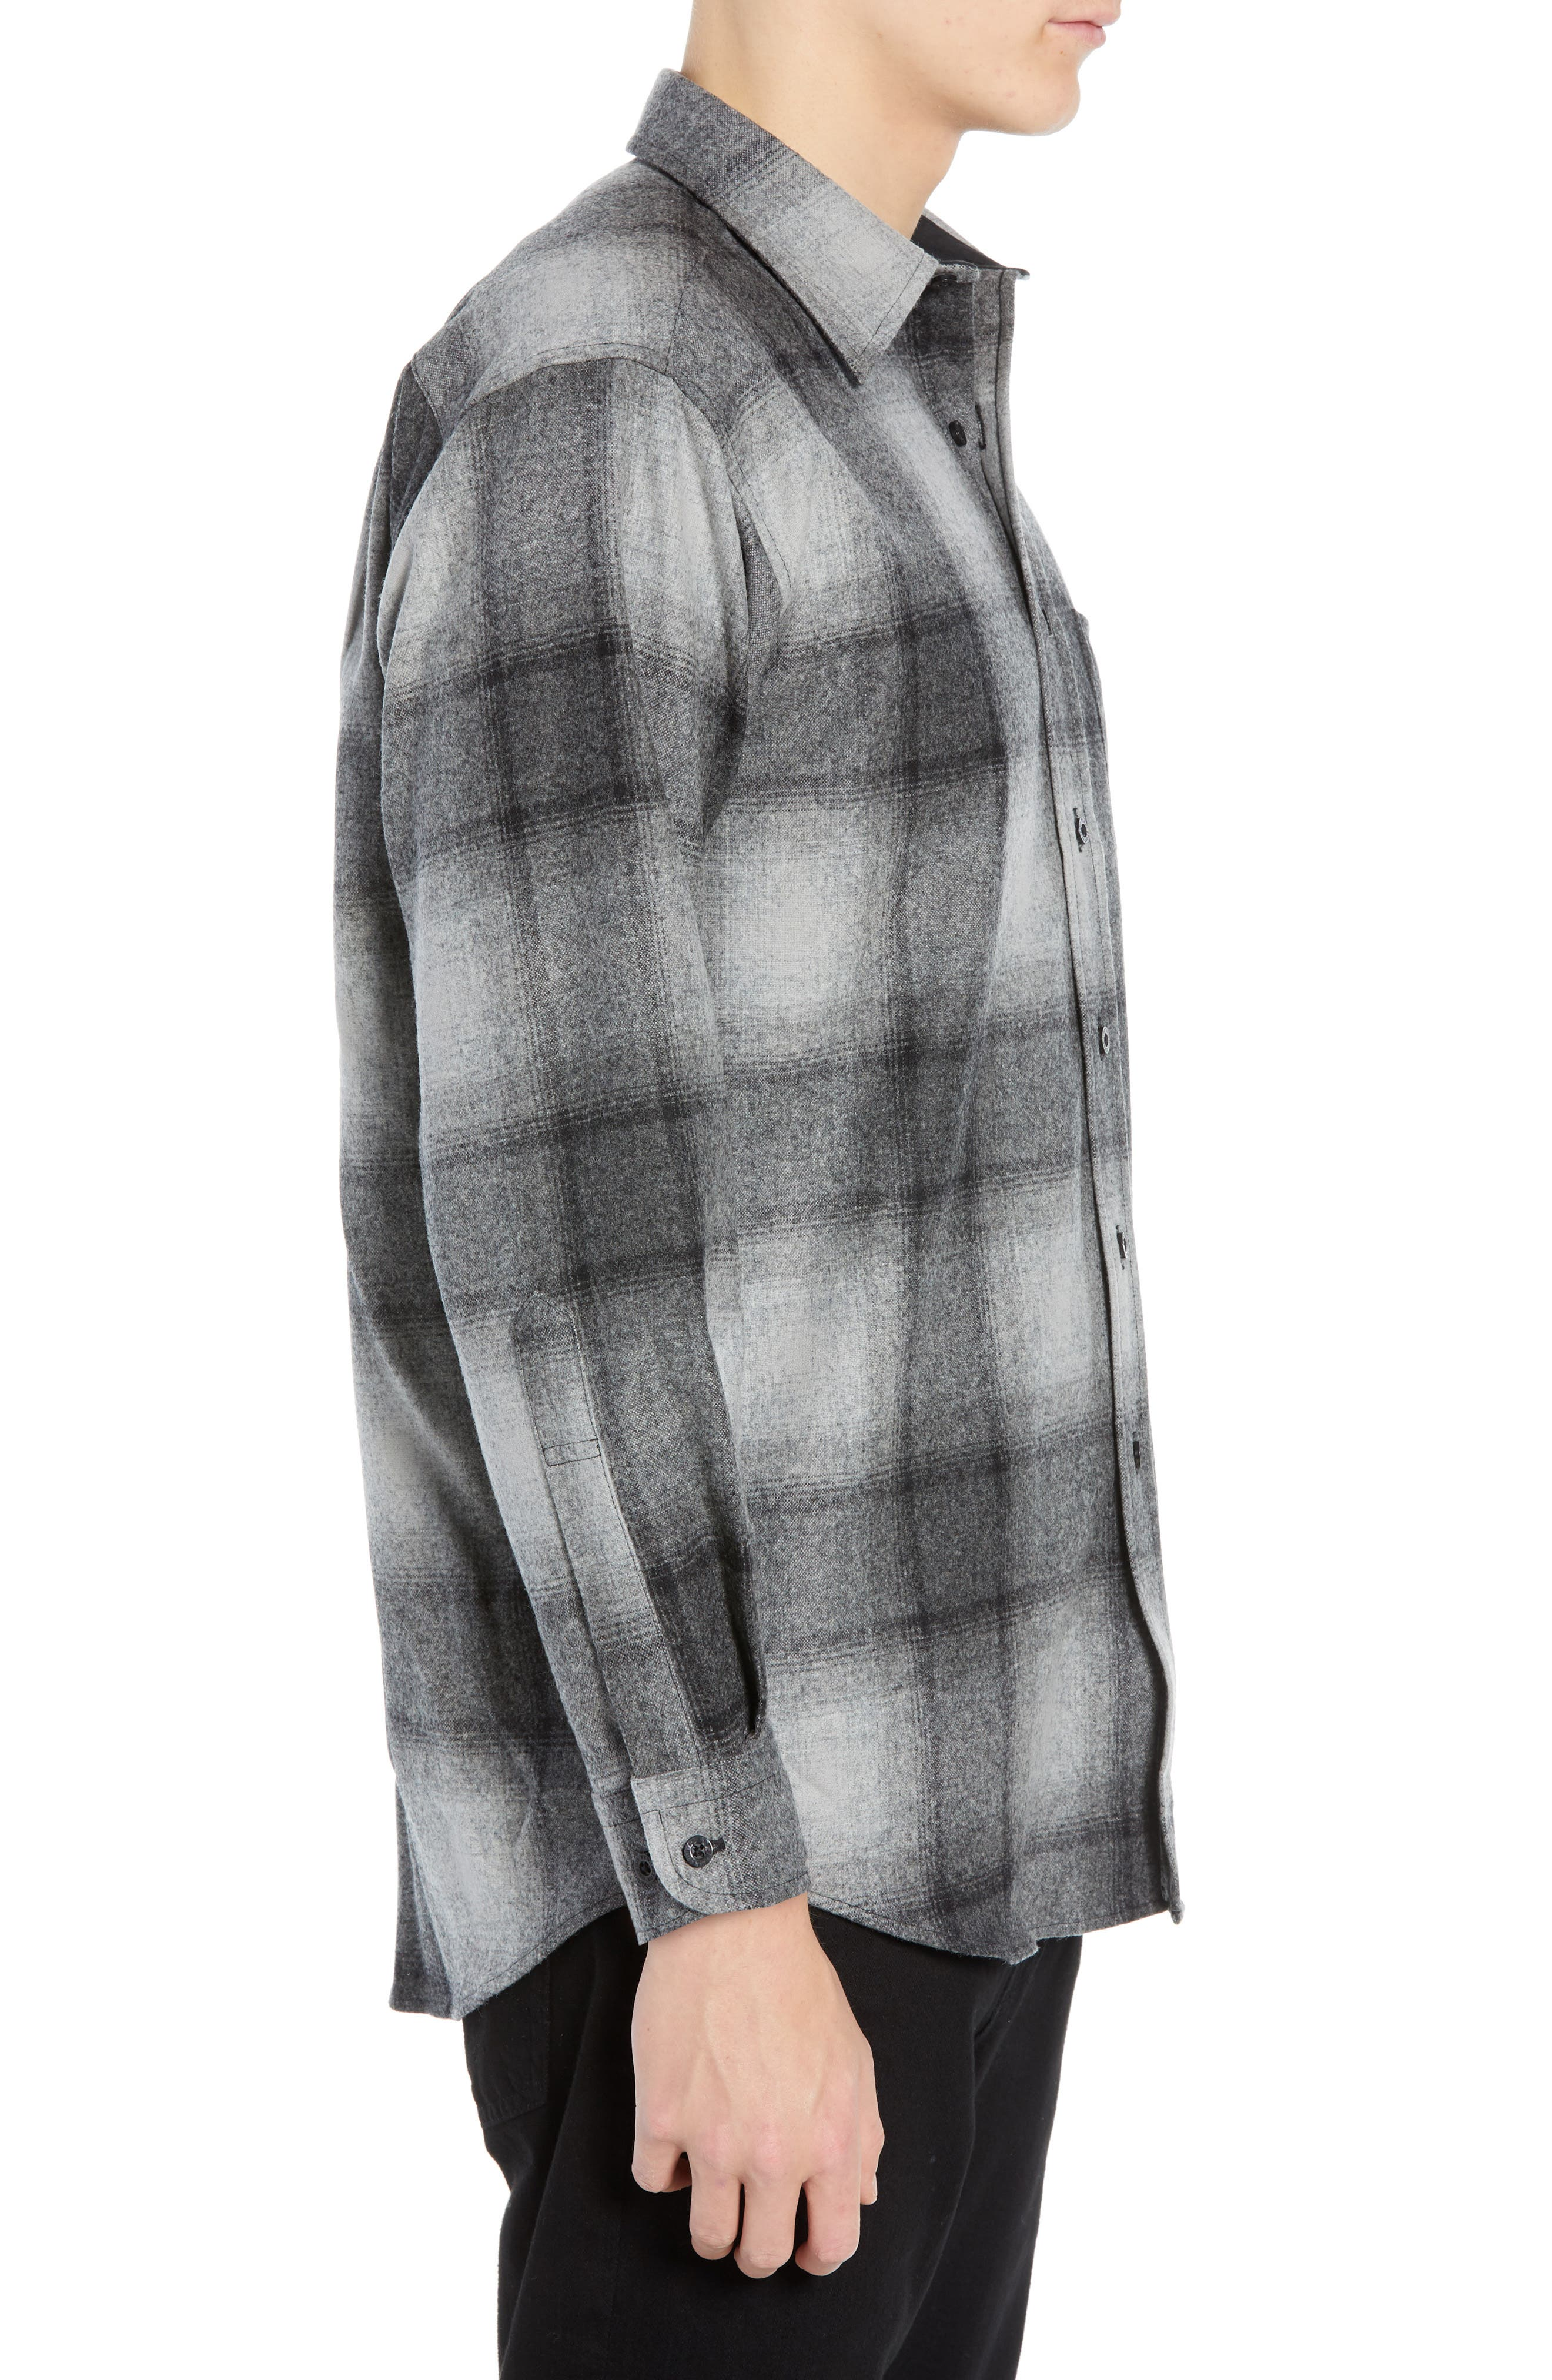 Lodge Wool Flannel Shirt,                             Alternate thumbnail 4, color,                             BLACK/ GREY MIX OMBRE